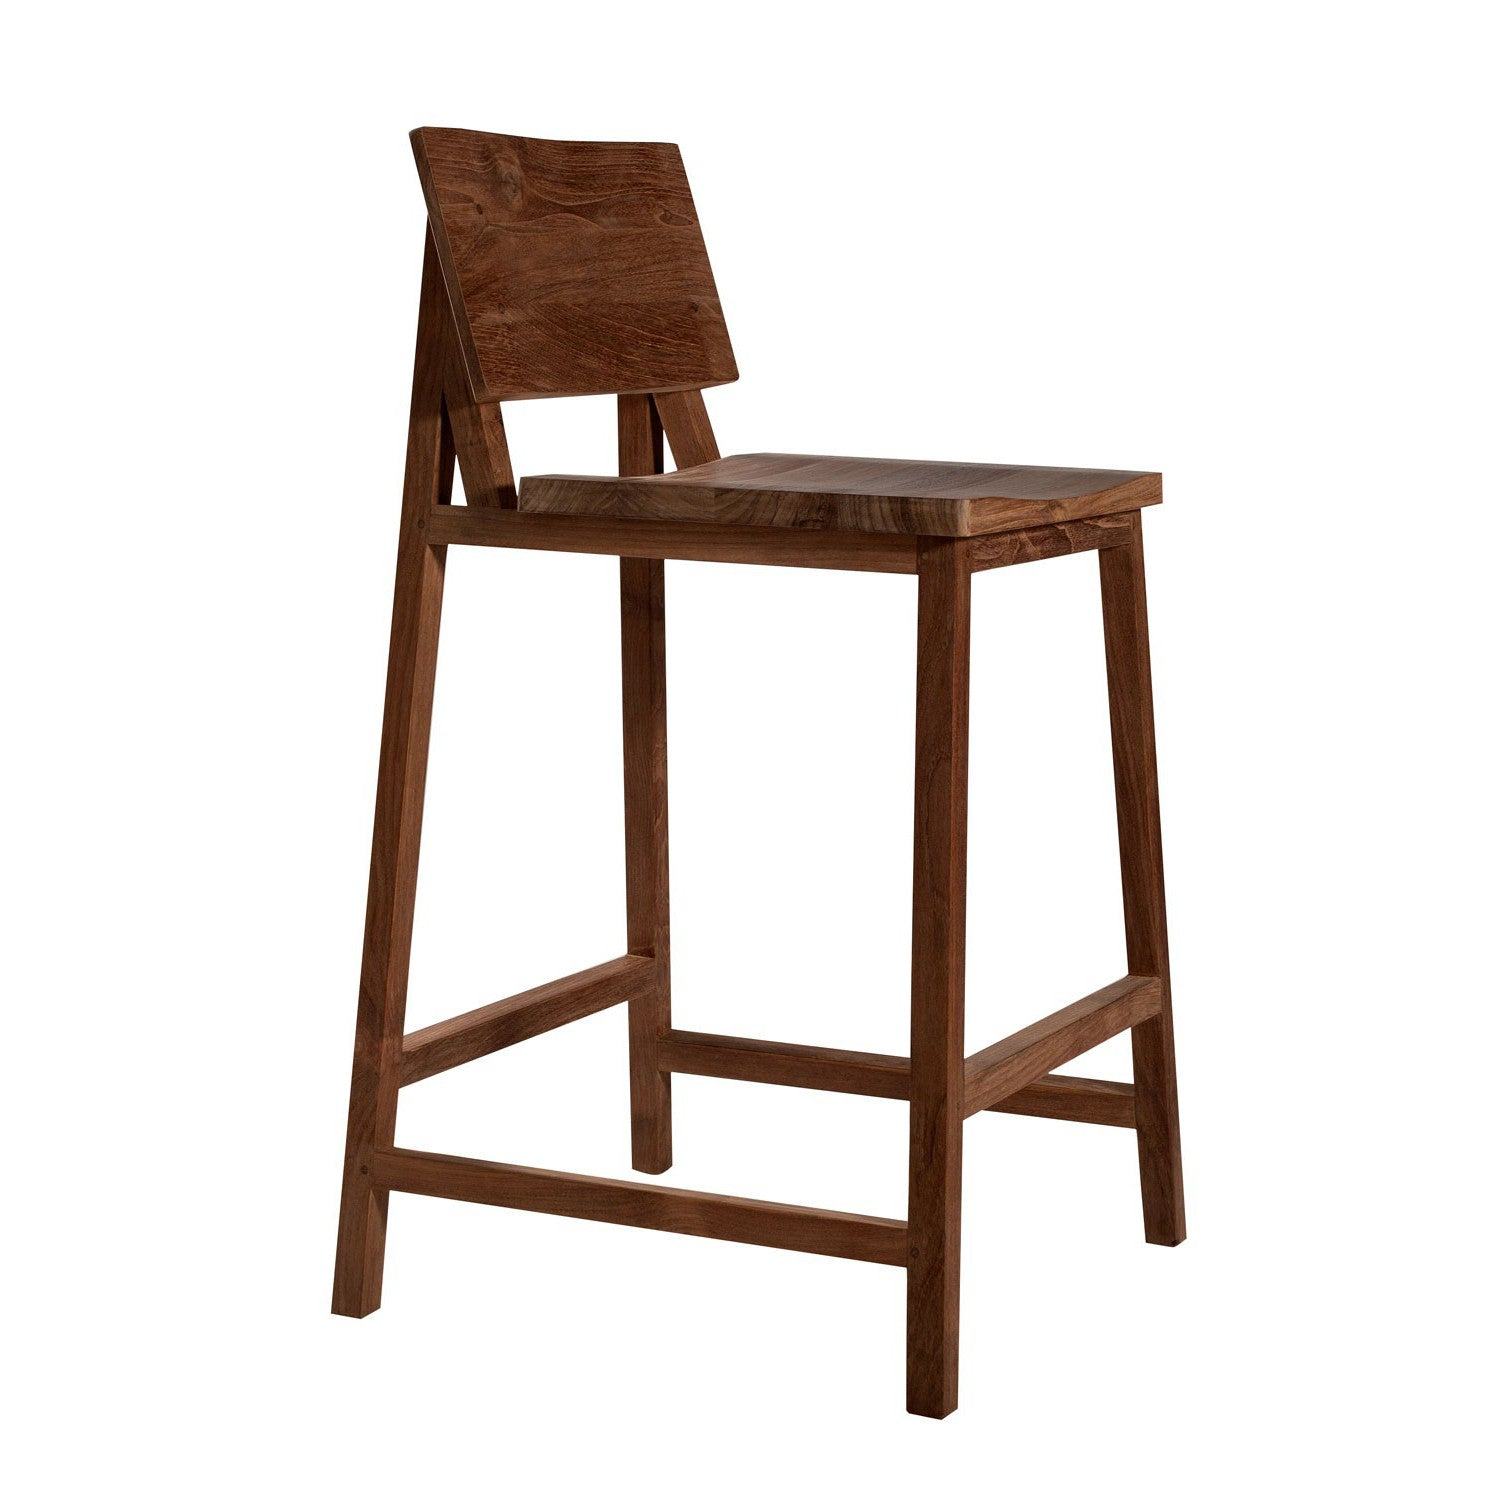 Teak N3 Kitchen Counter Stool